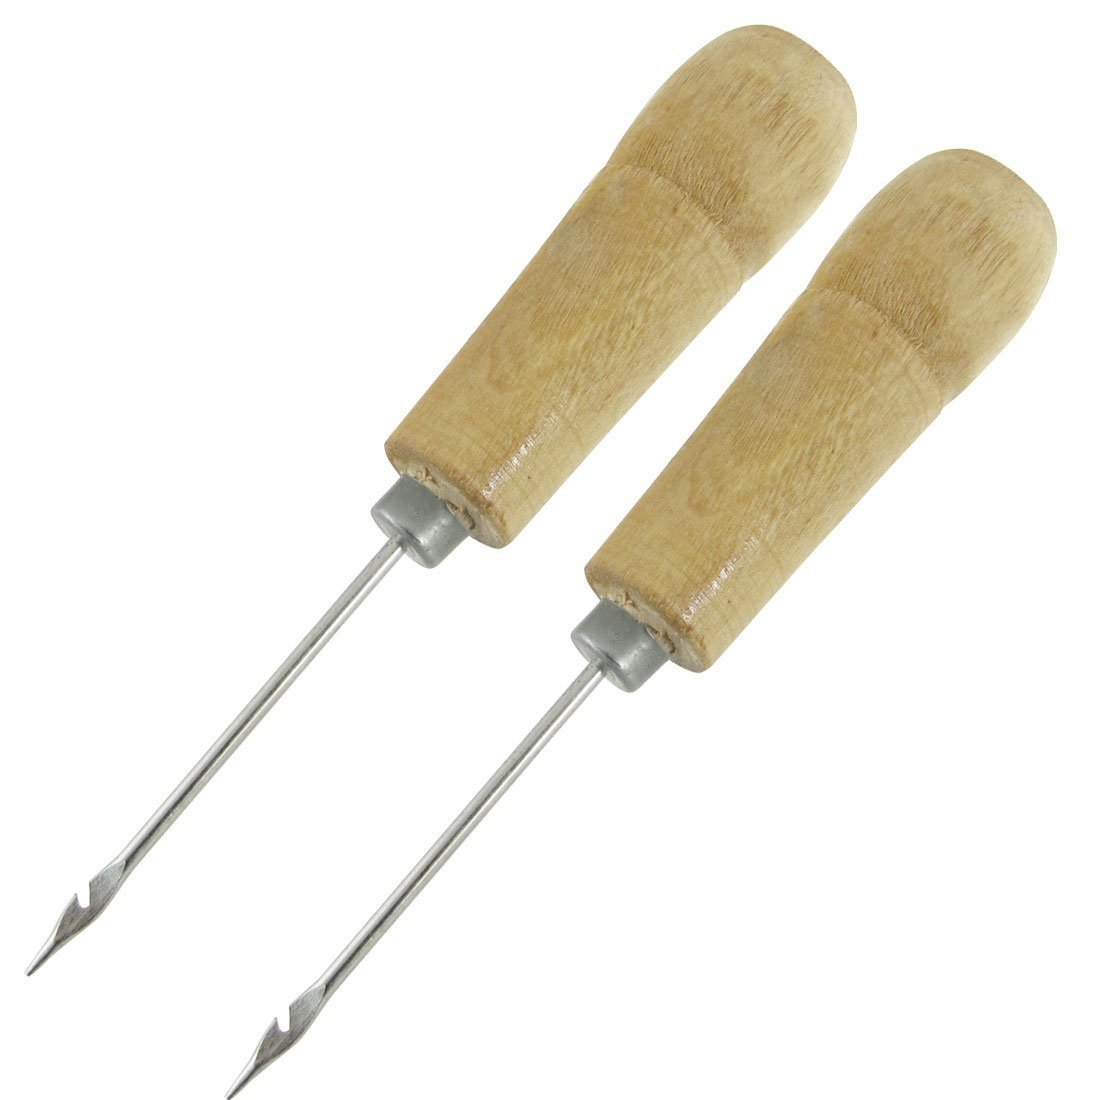 SODIAL(R) 2 Pcs Wooden Handle Sewing Awl Speedy Hand Stitcher New